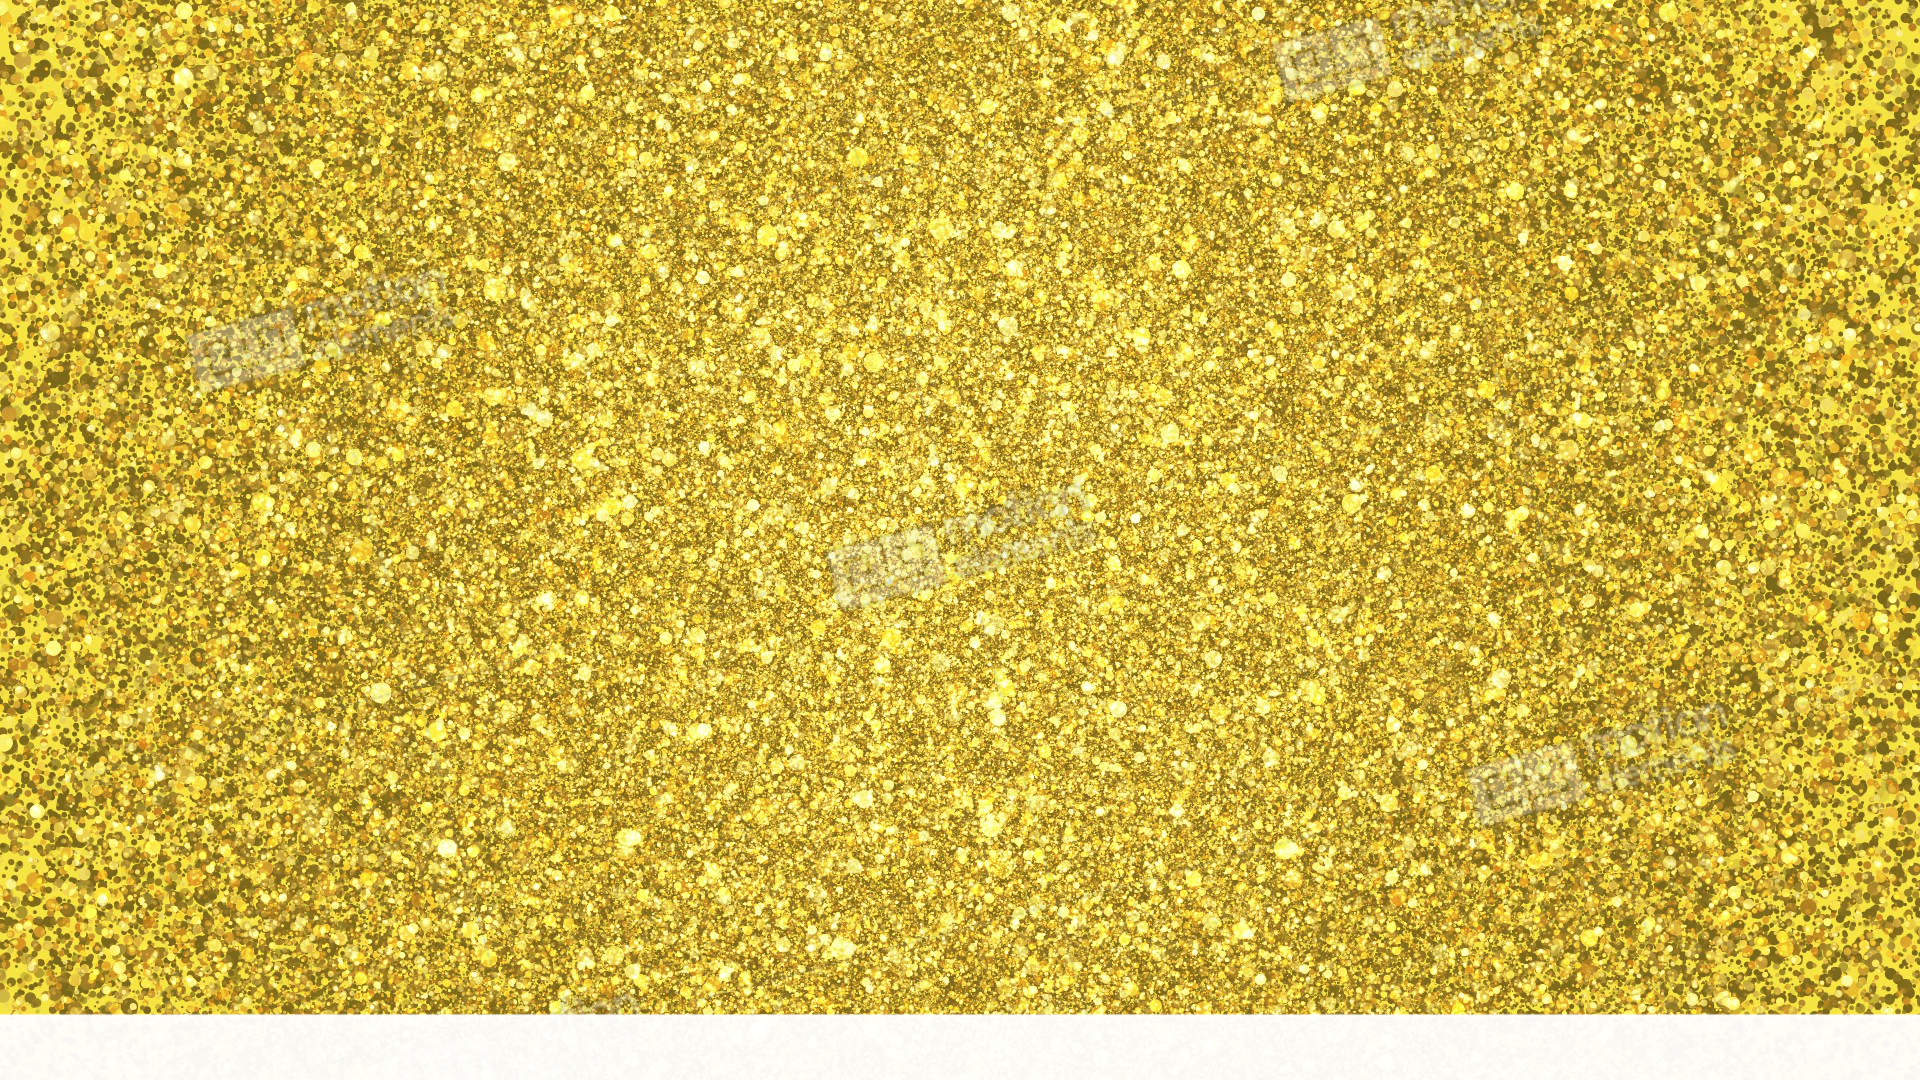 golden glitter background loop stock animation 11758517 yes clip art jpeg yes clip art images